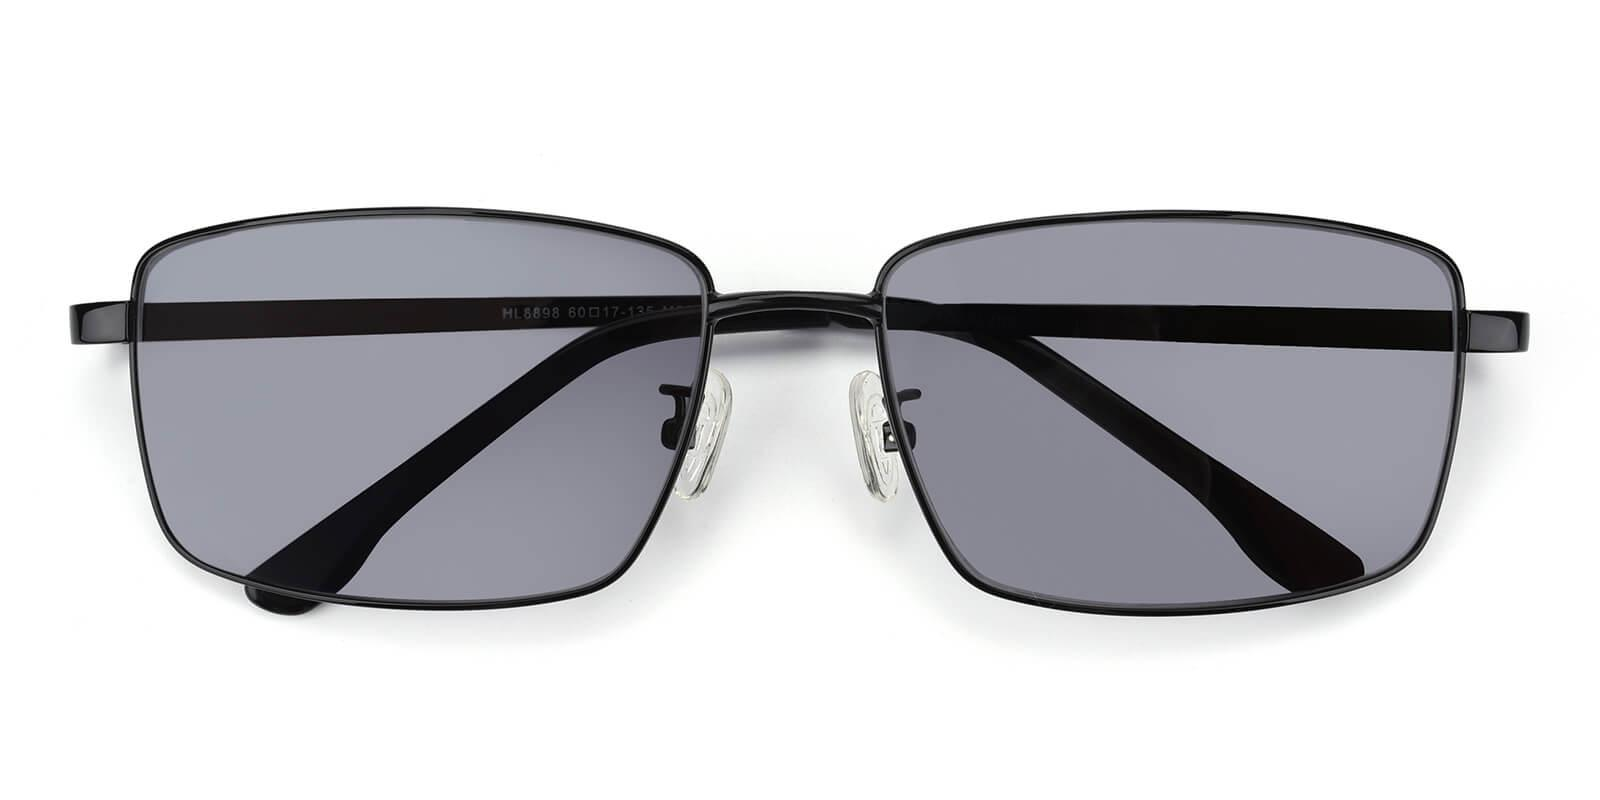 Sea-Black-Rectangle-Metal-Sunglasses-detail